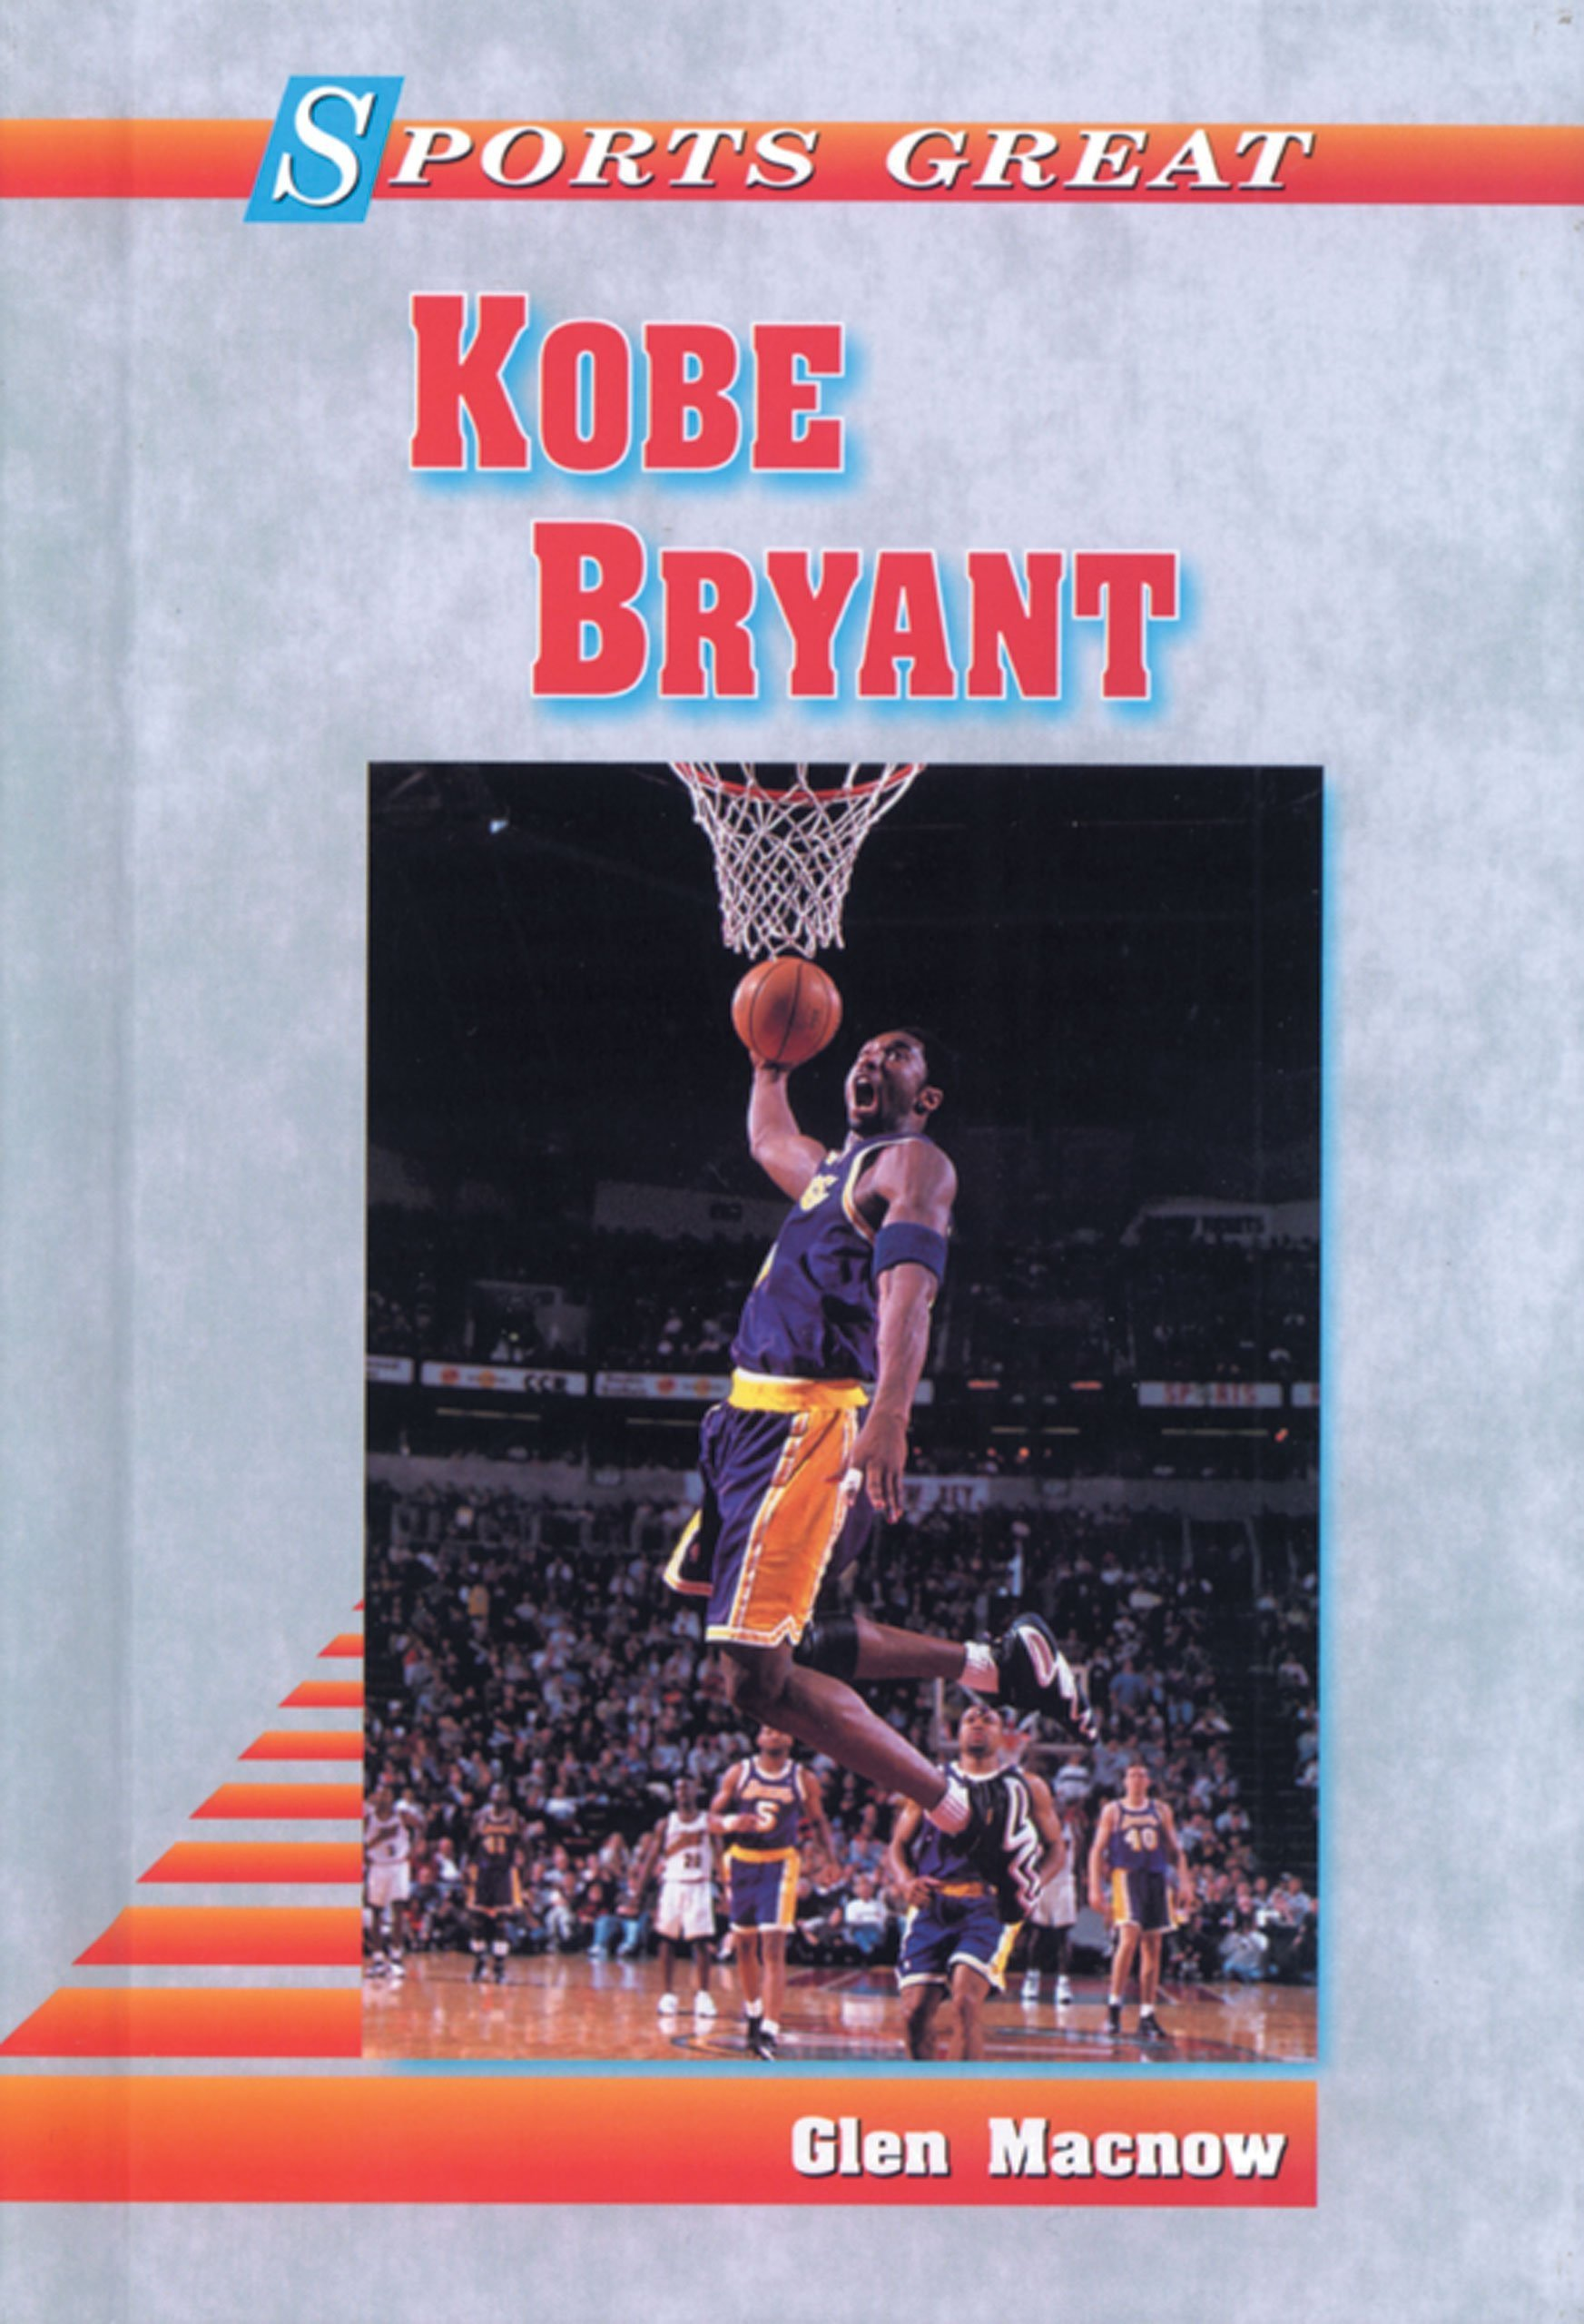 Sports Great Kobe Bryant (Sports Great Books)